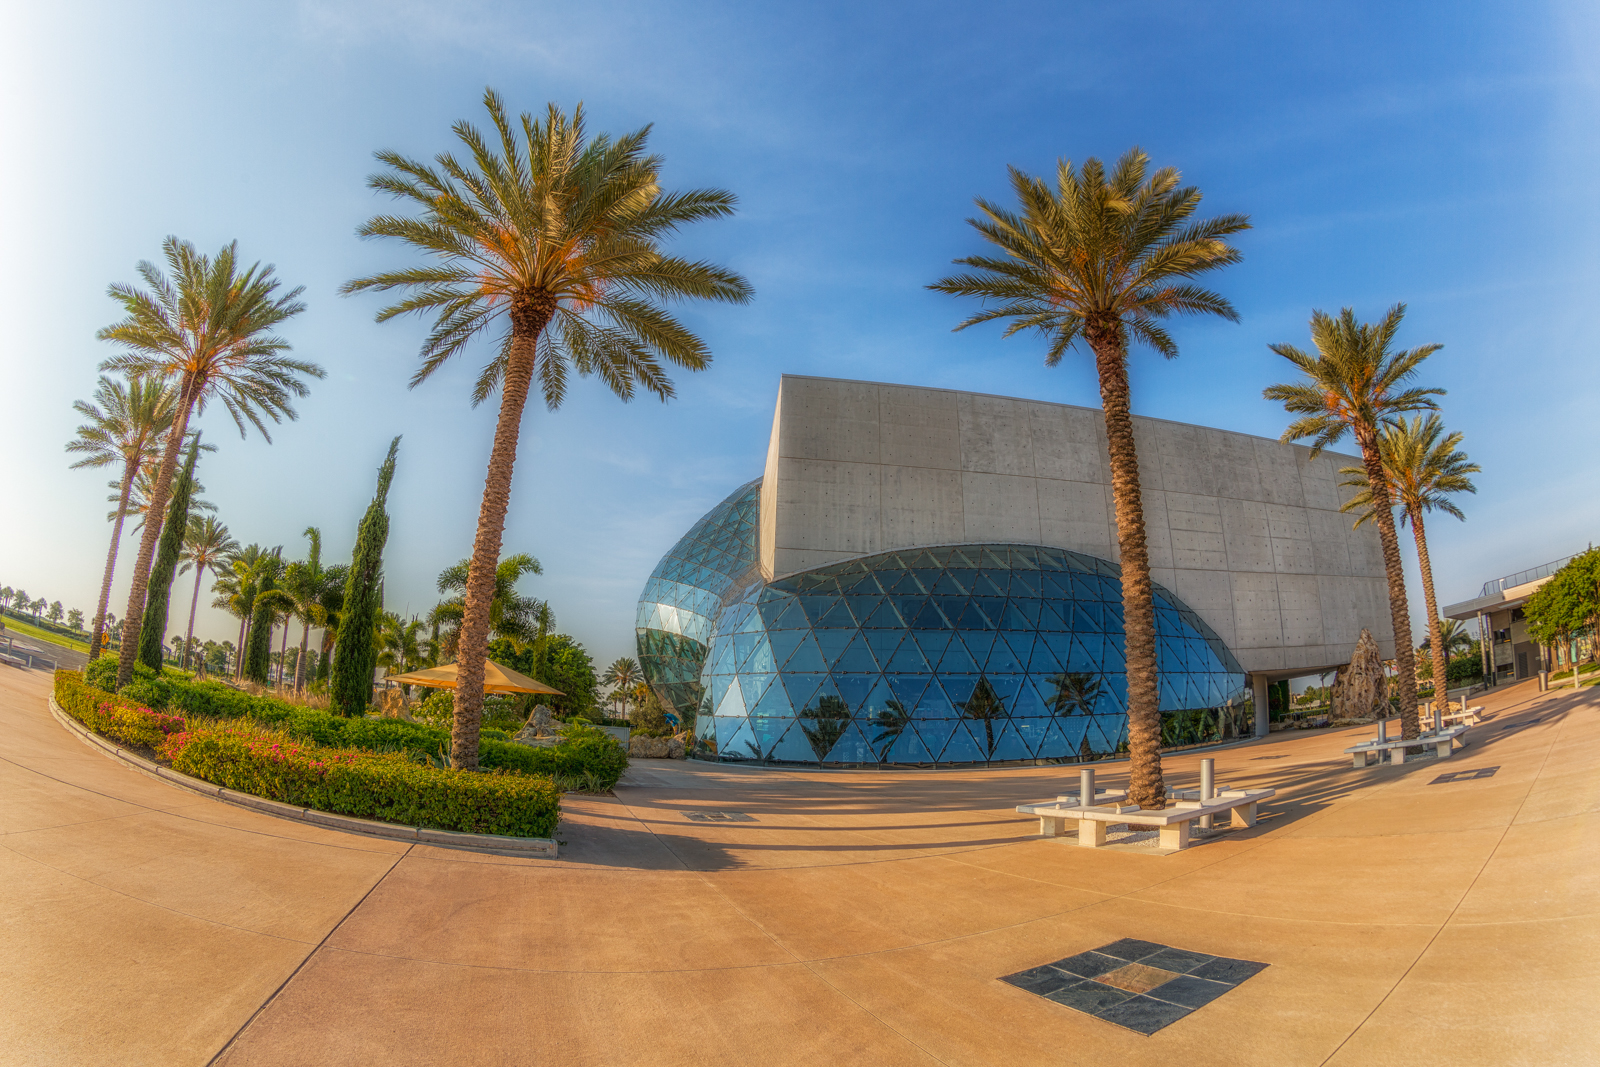 St Petersburg Palm Trees plus Dali Museum and Mahaffey Theater